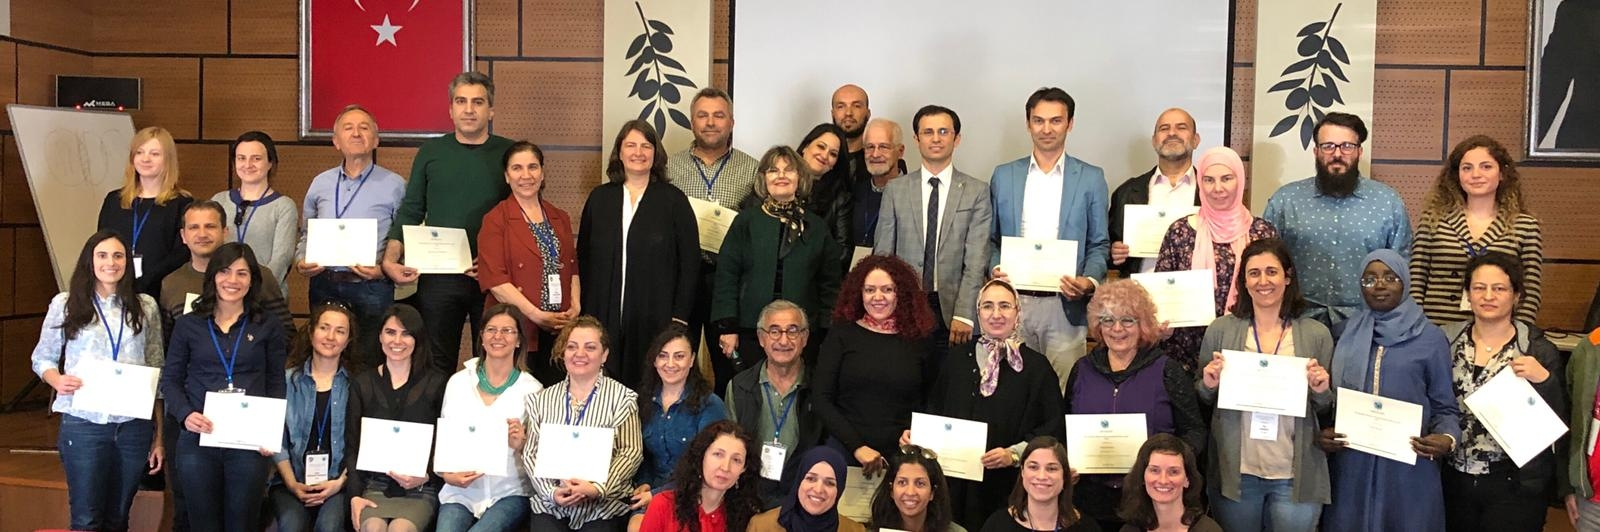 Panel leader training course held in Izmir, Turkey